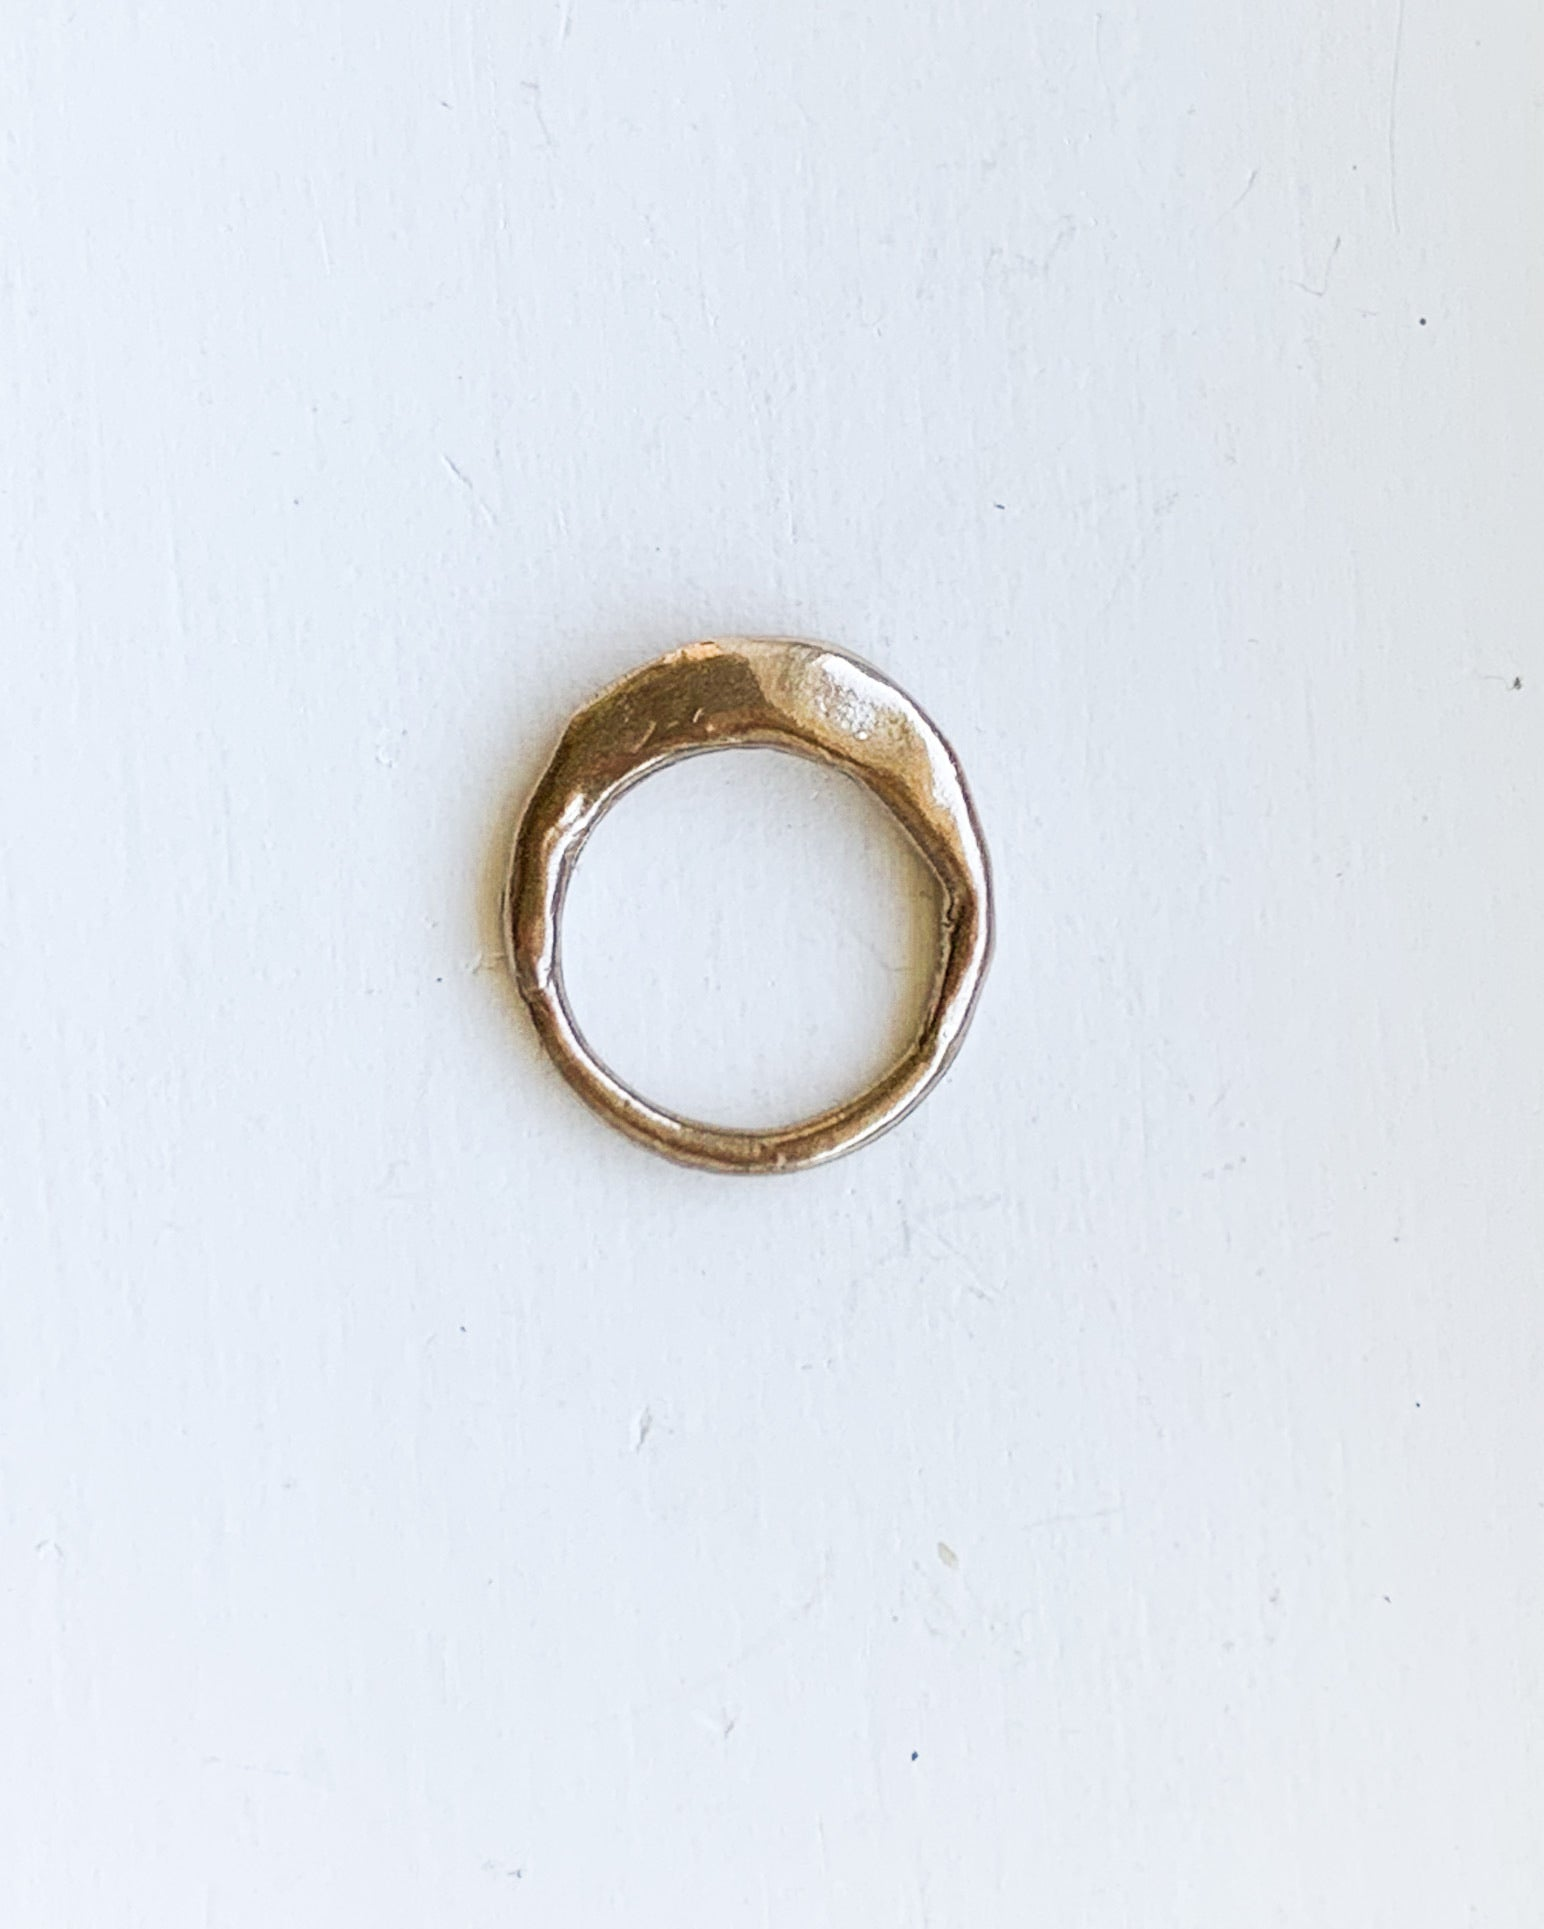 a hand formed bronze ring made from wax cast in metal on a white background